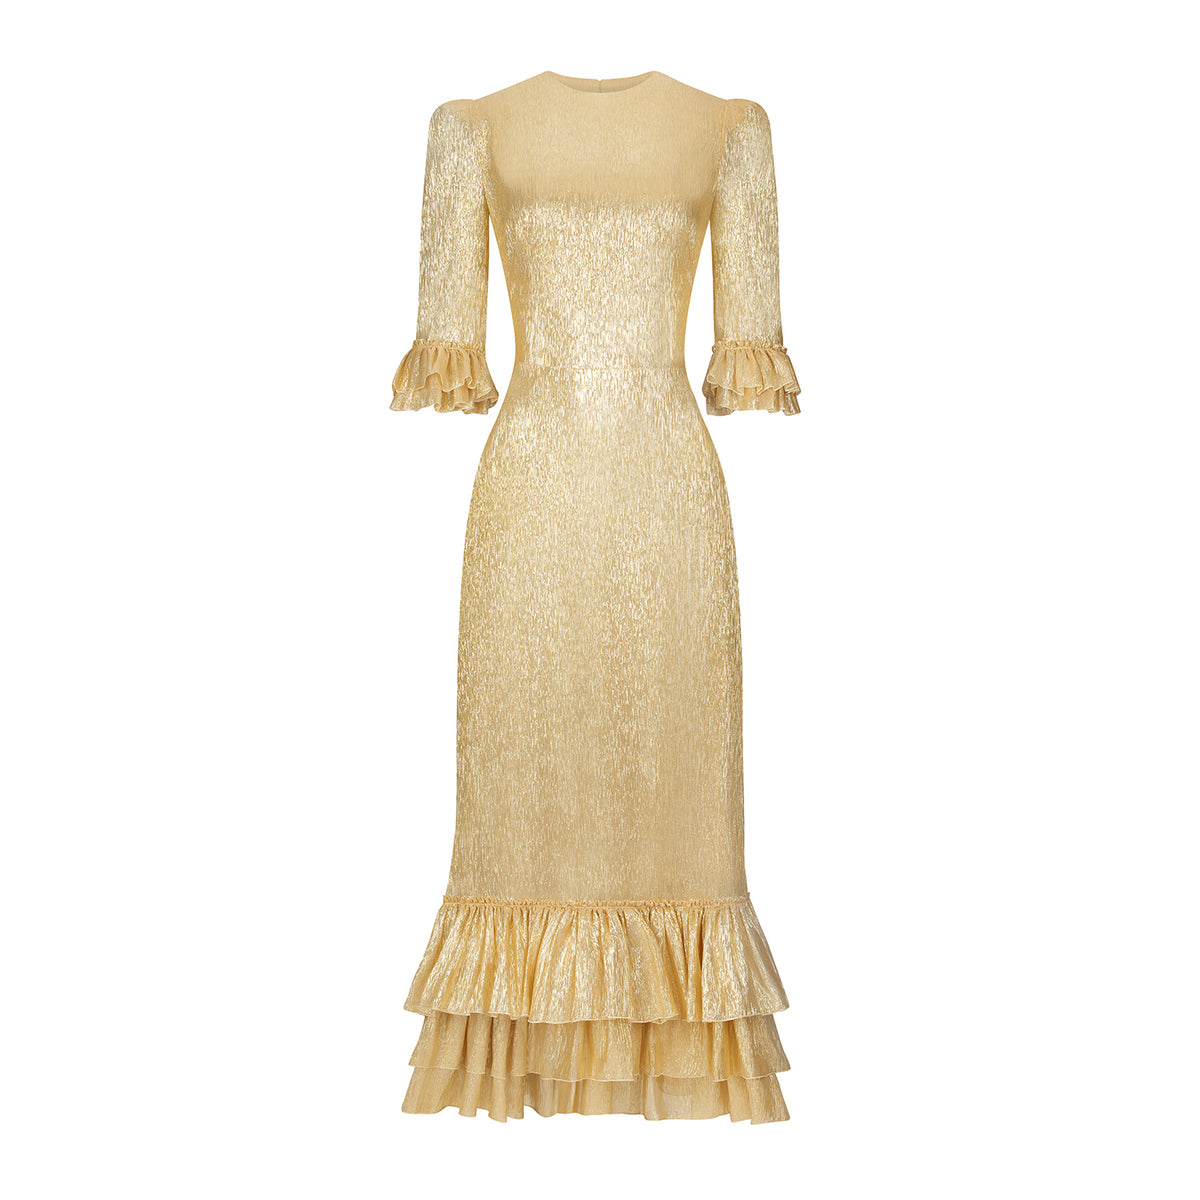 THE CINDERELLA GOLD METALLIC SILK DRESS